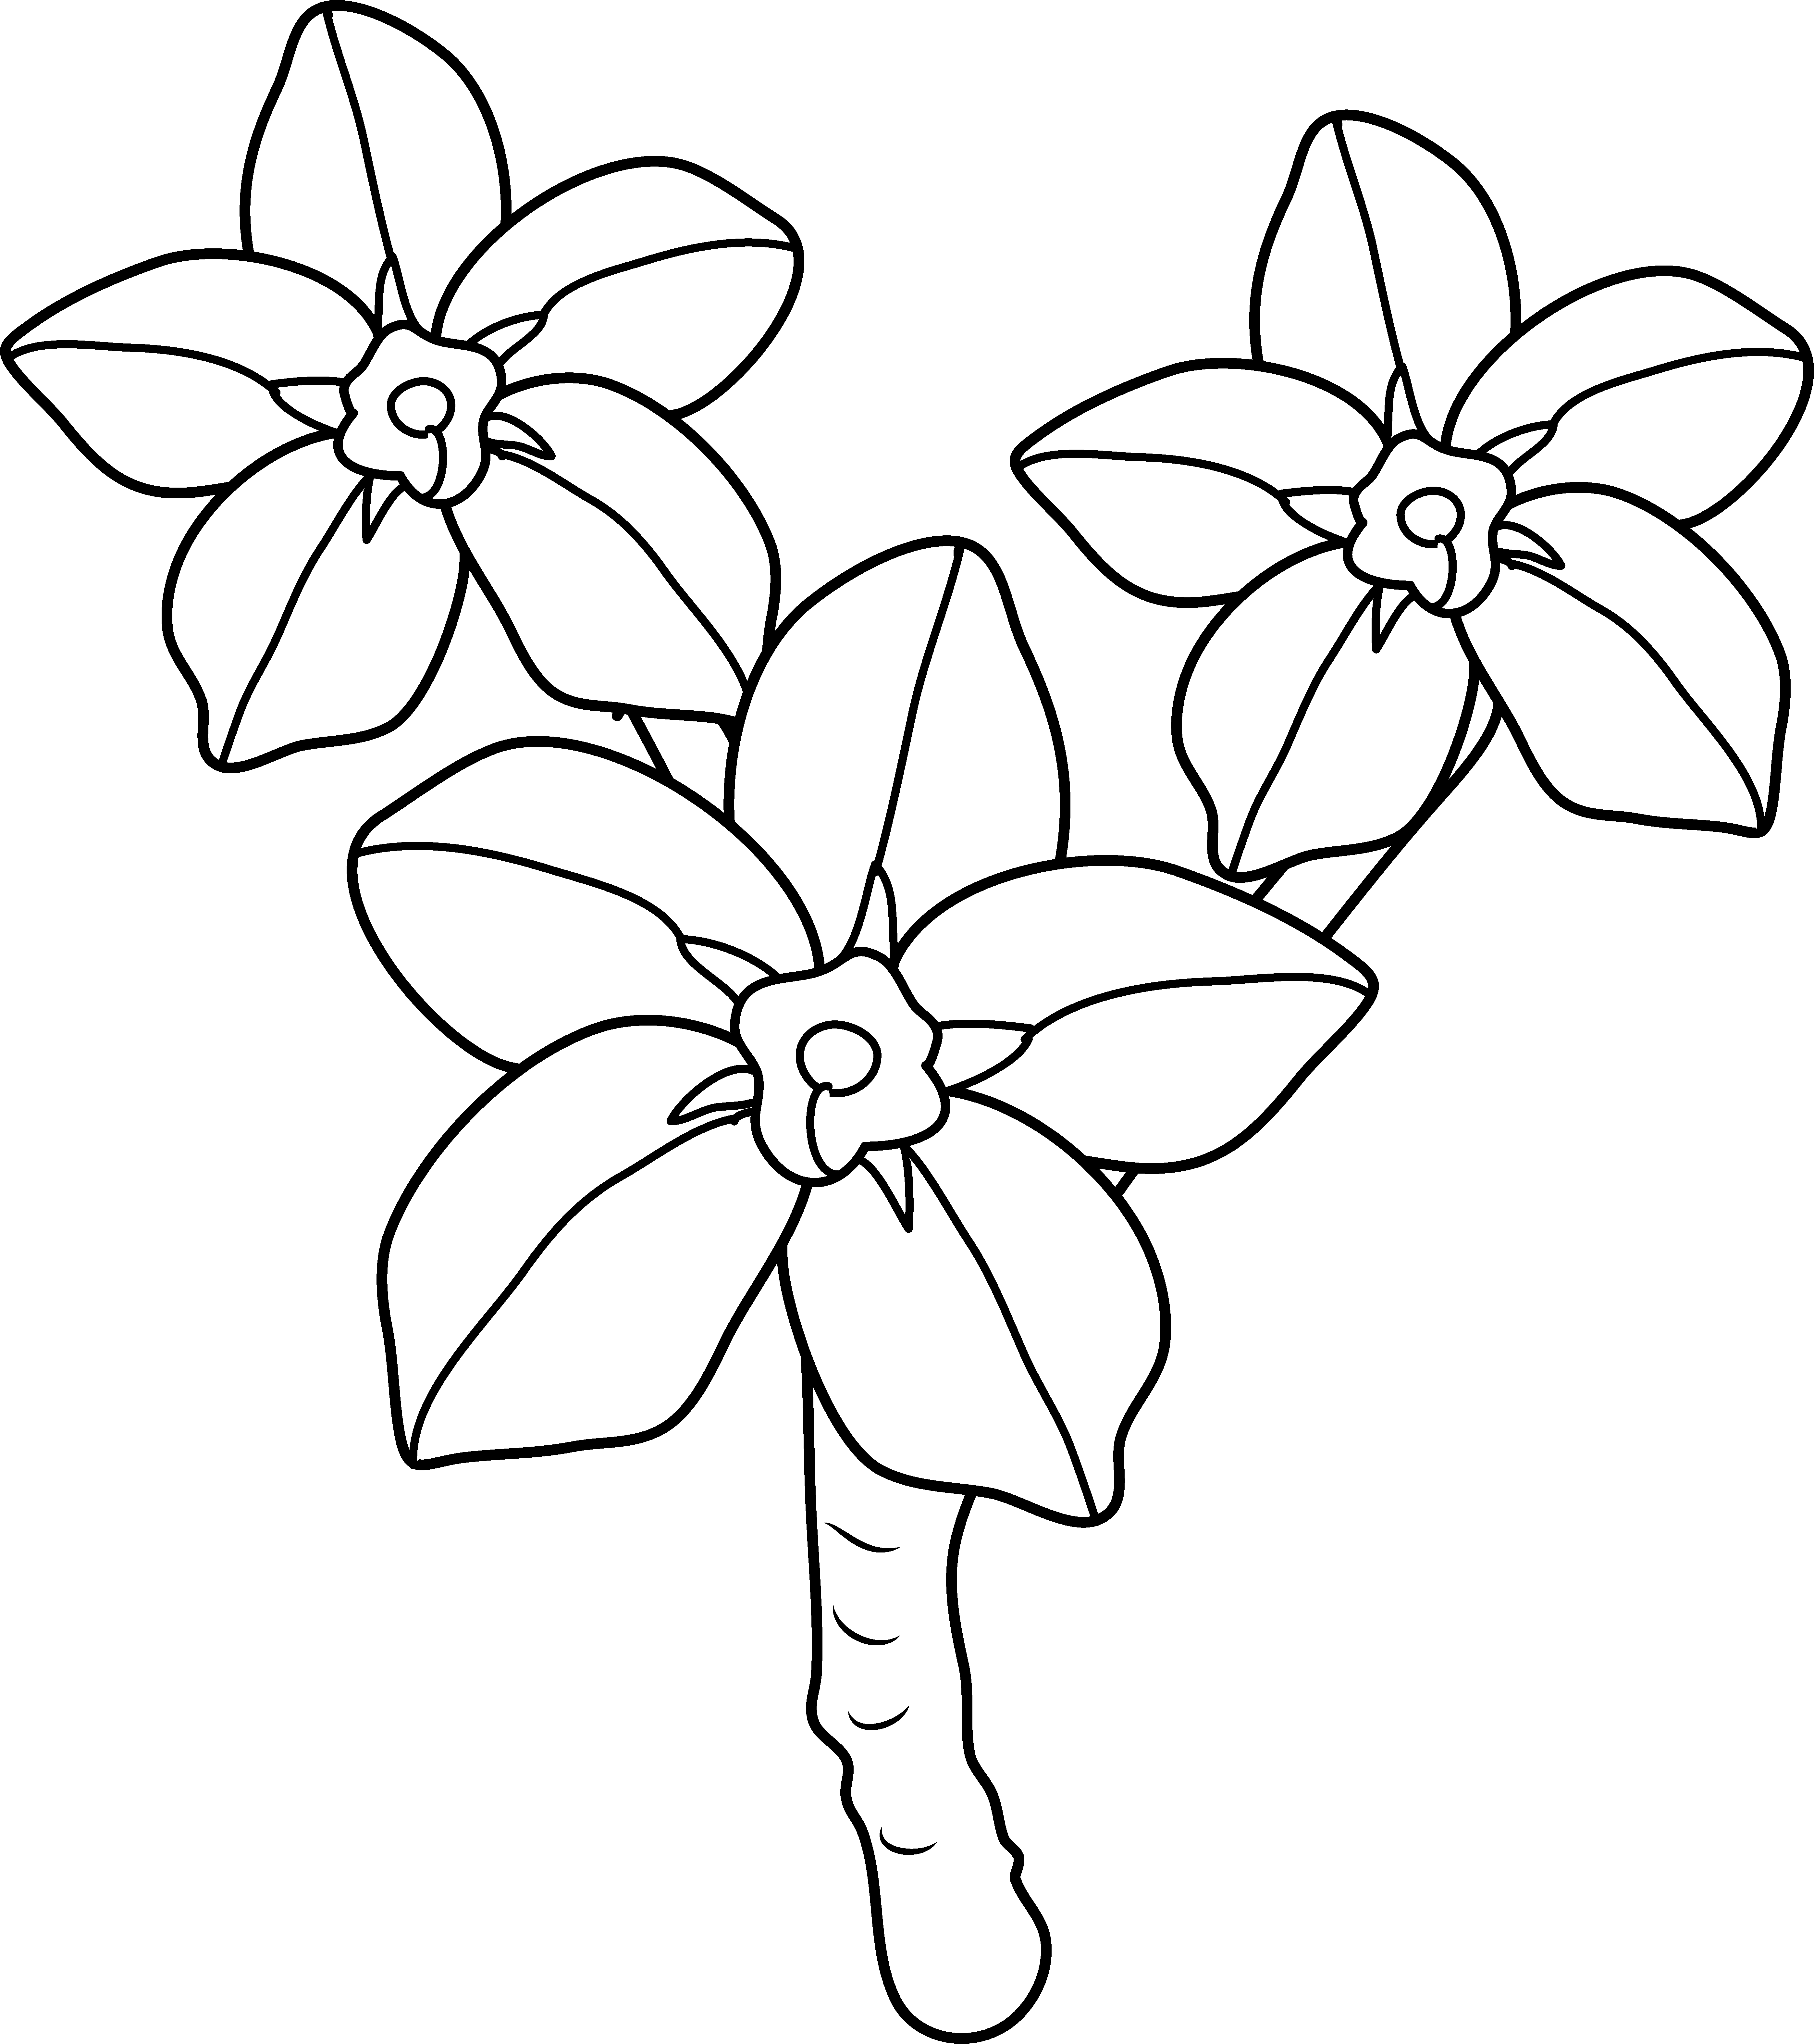 forget me not outline forget me not drawing at getdrawings free download not outline me forget